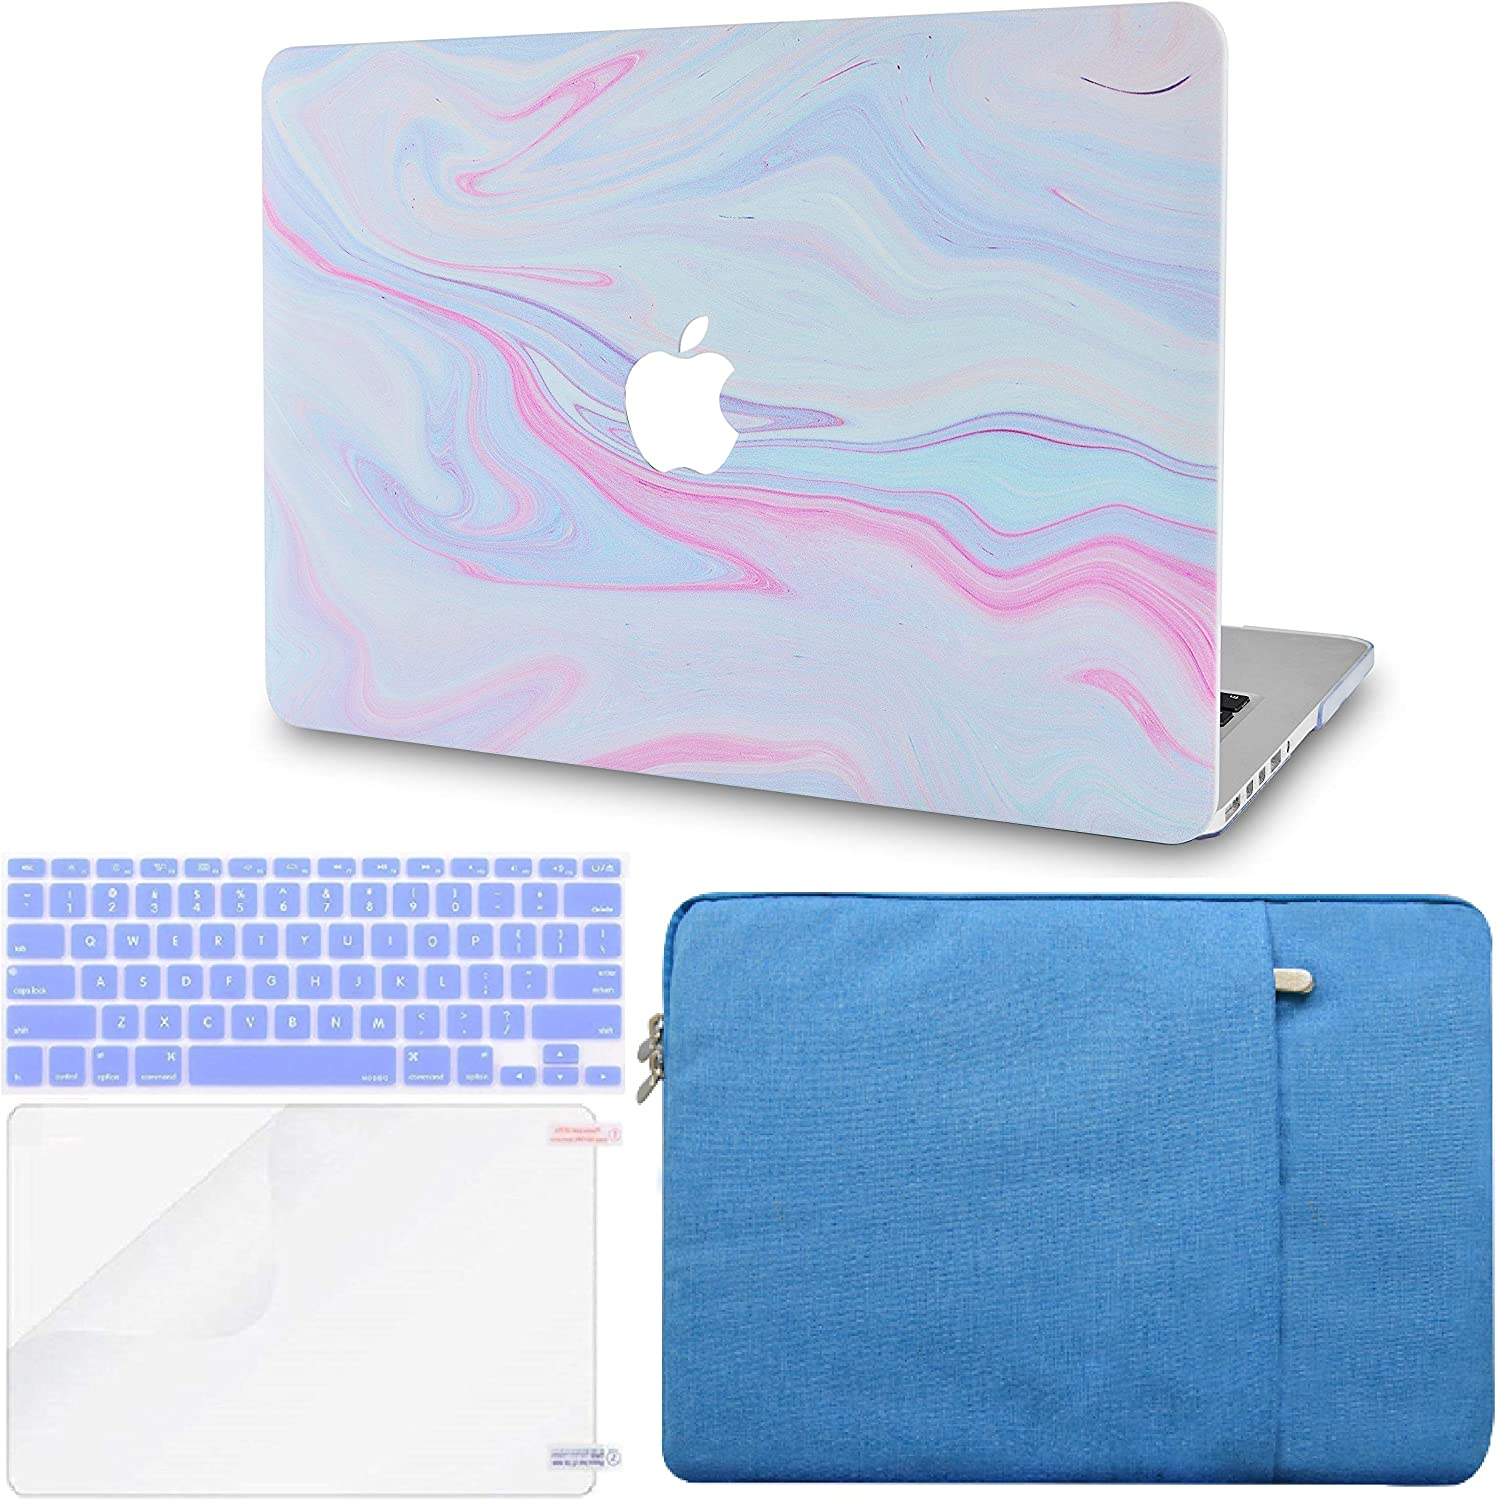 """LuvCase 4 in 1 LaptopCase forMacBookPro 13"""" (2016-2020) w/wo Touch Bar A2159/A1989/A1706/A1708 HardShellCover, Sleeve, Keyboard Cover & Screen Protector(Purple Marble with Pink Veins)"""